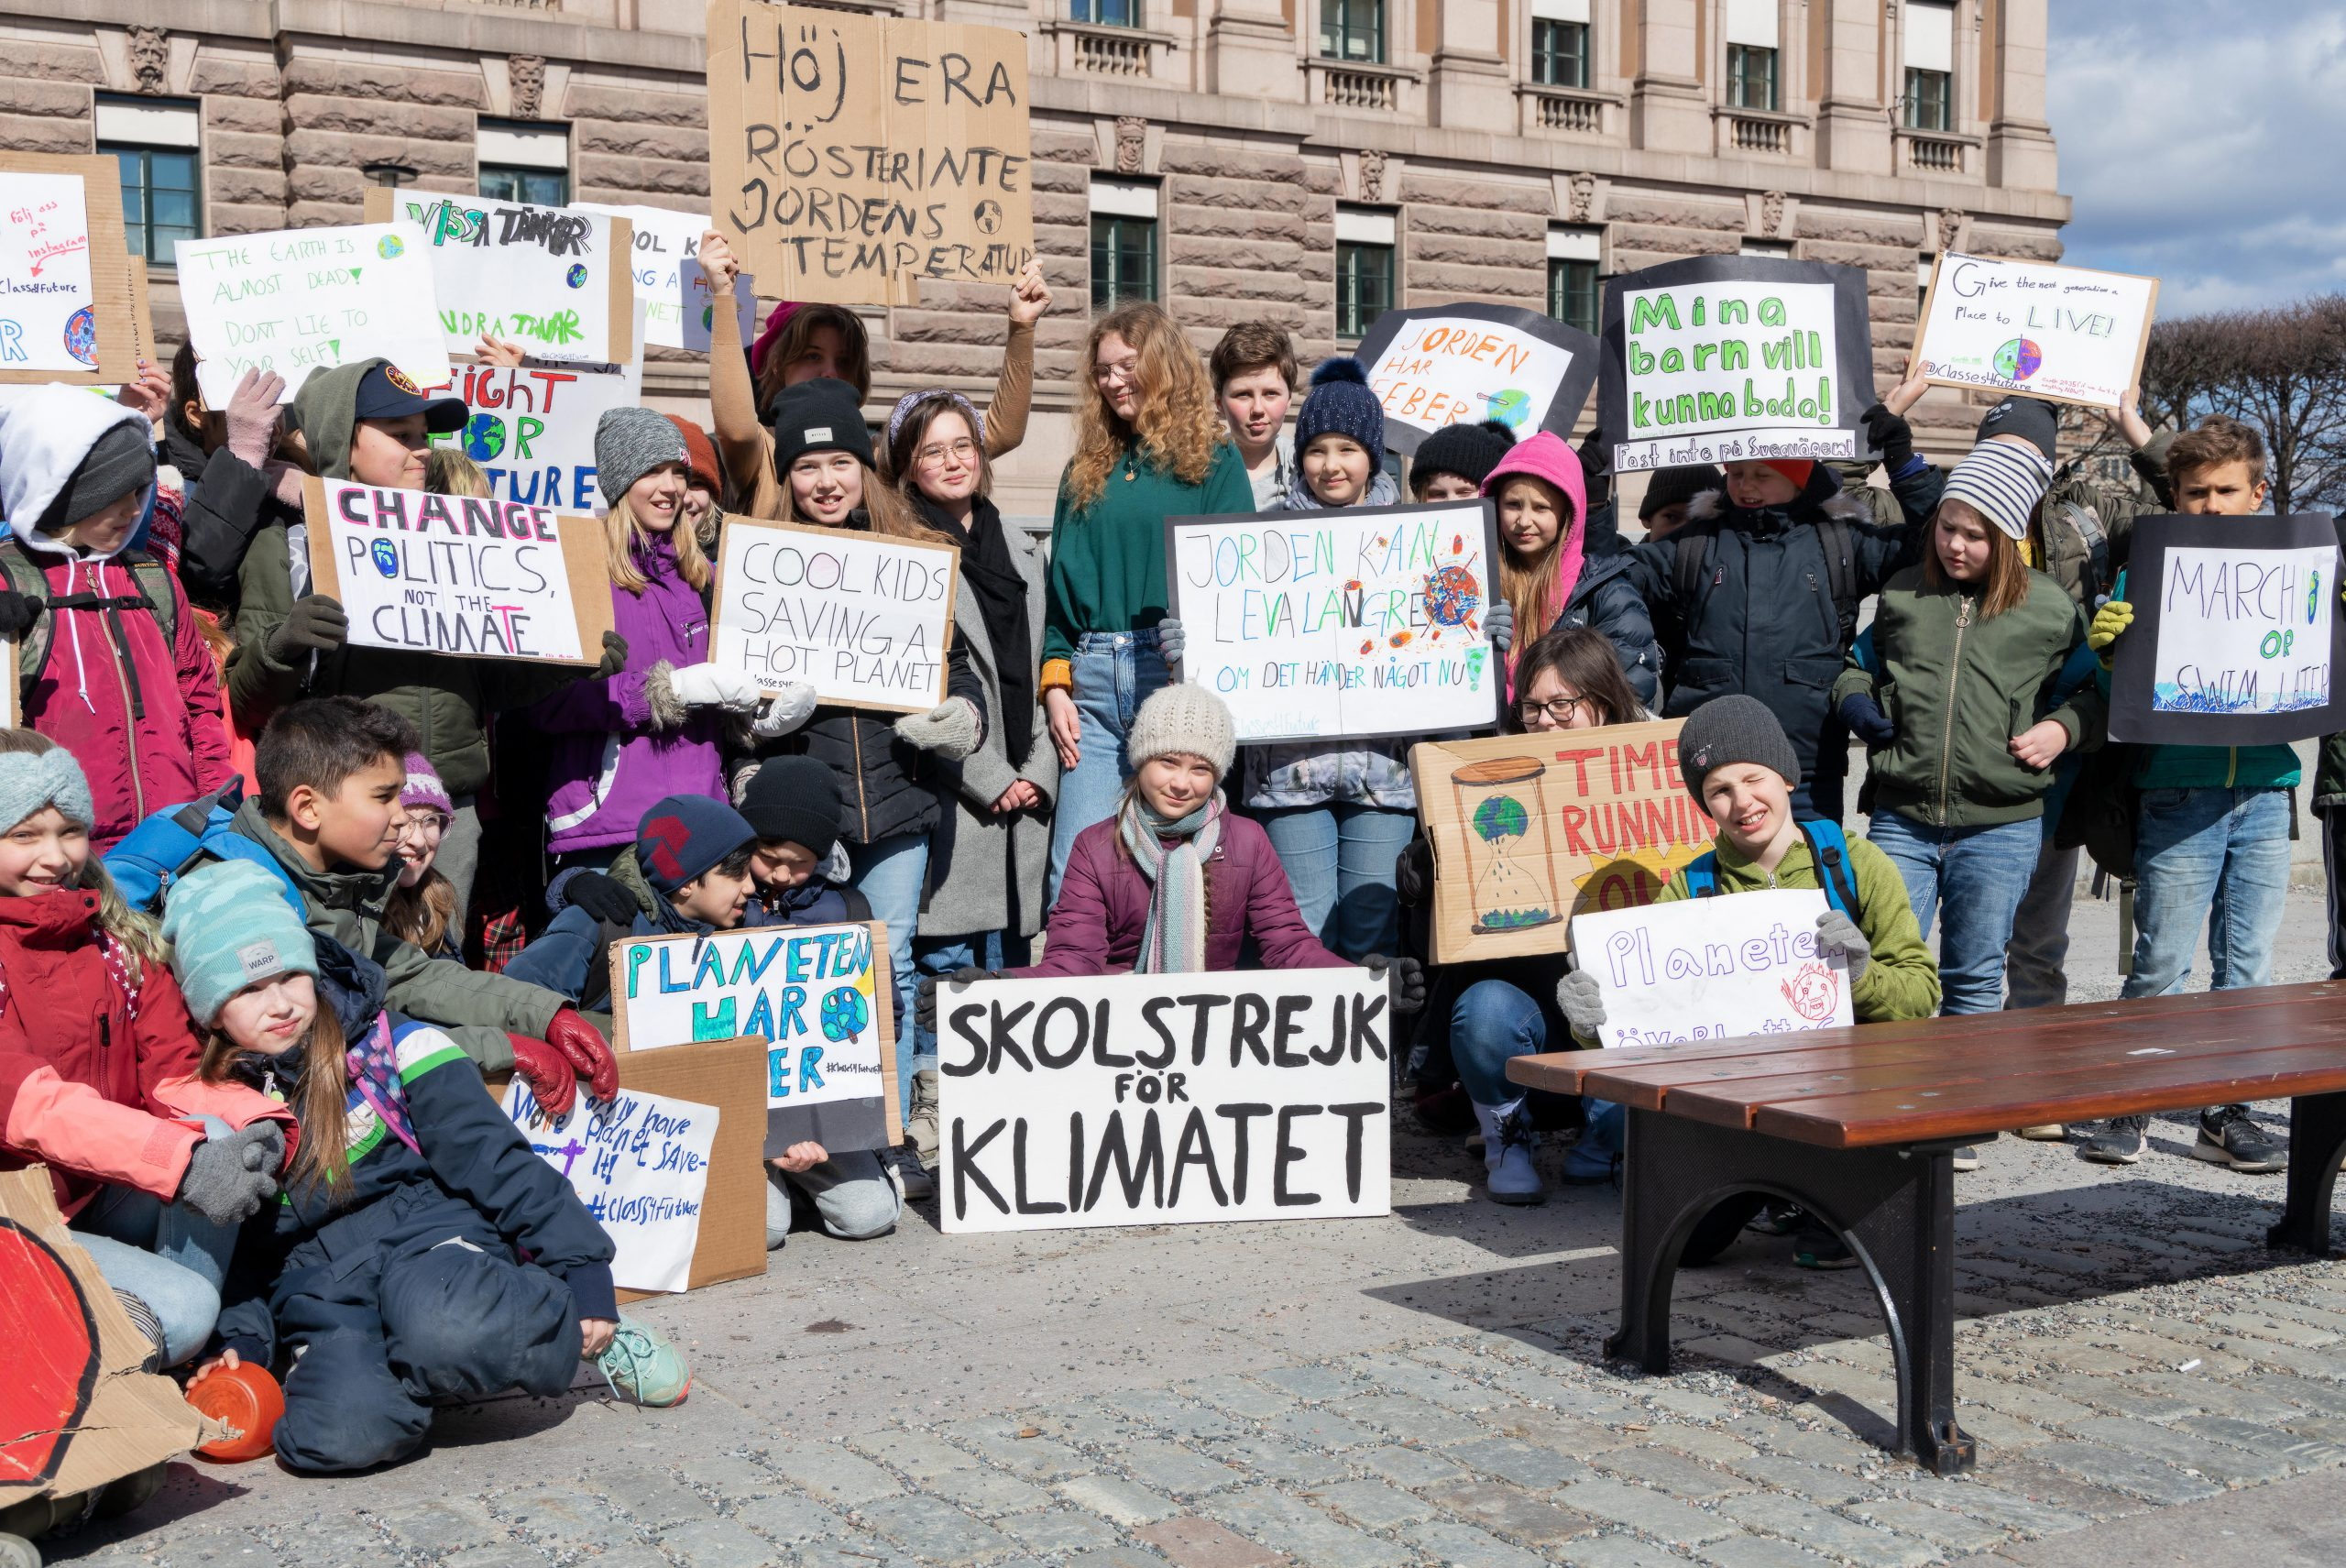 We're supporting the Global Climate Strike